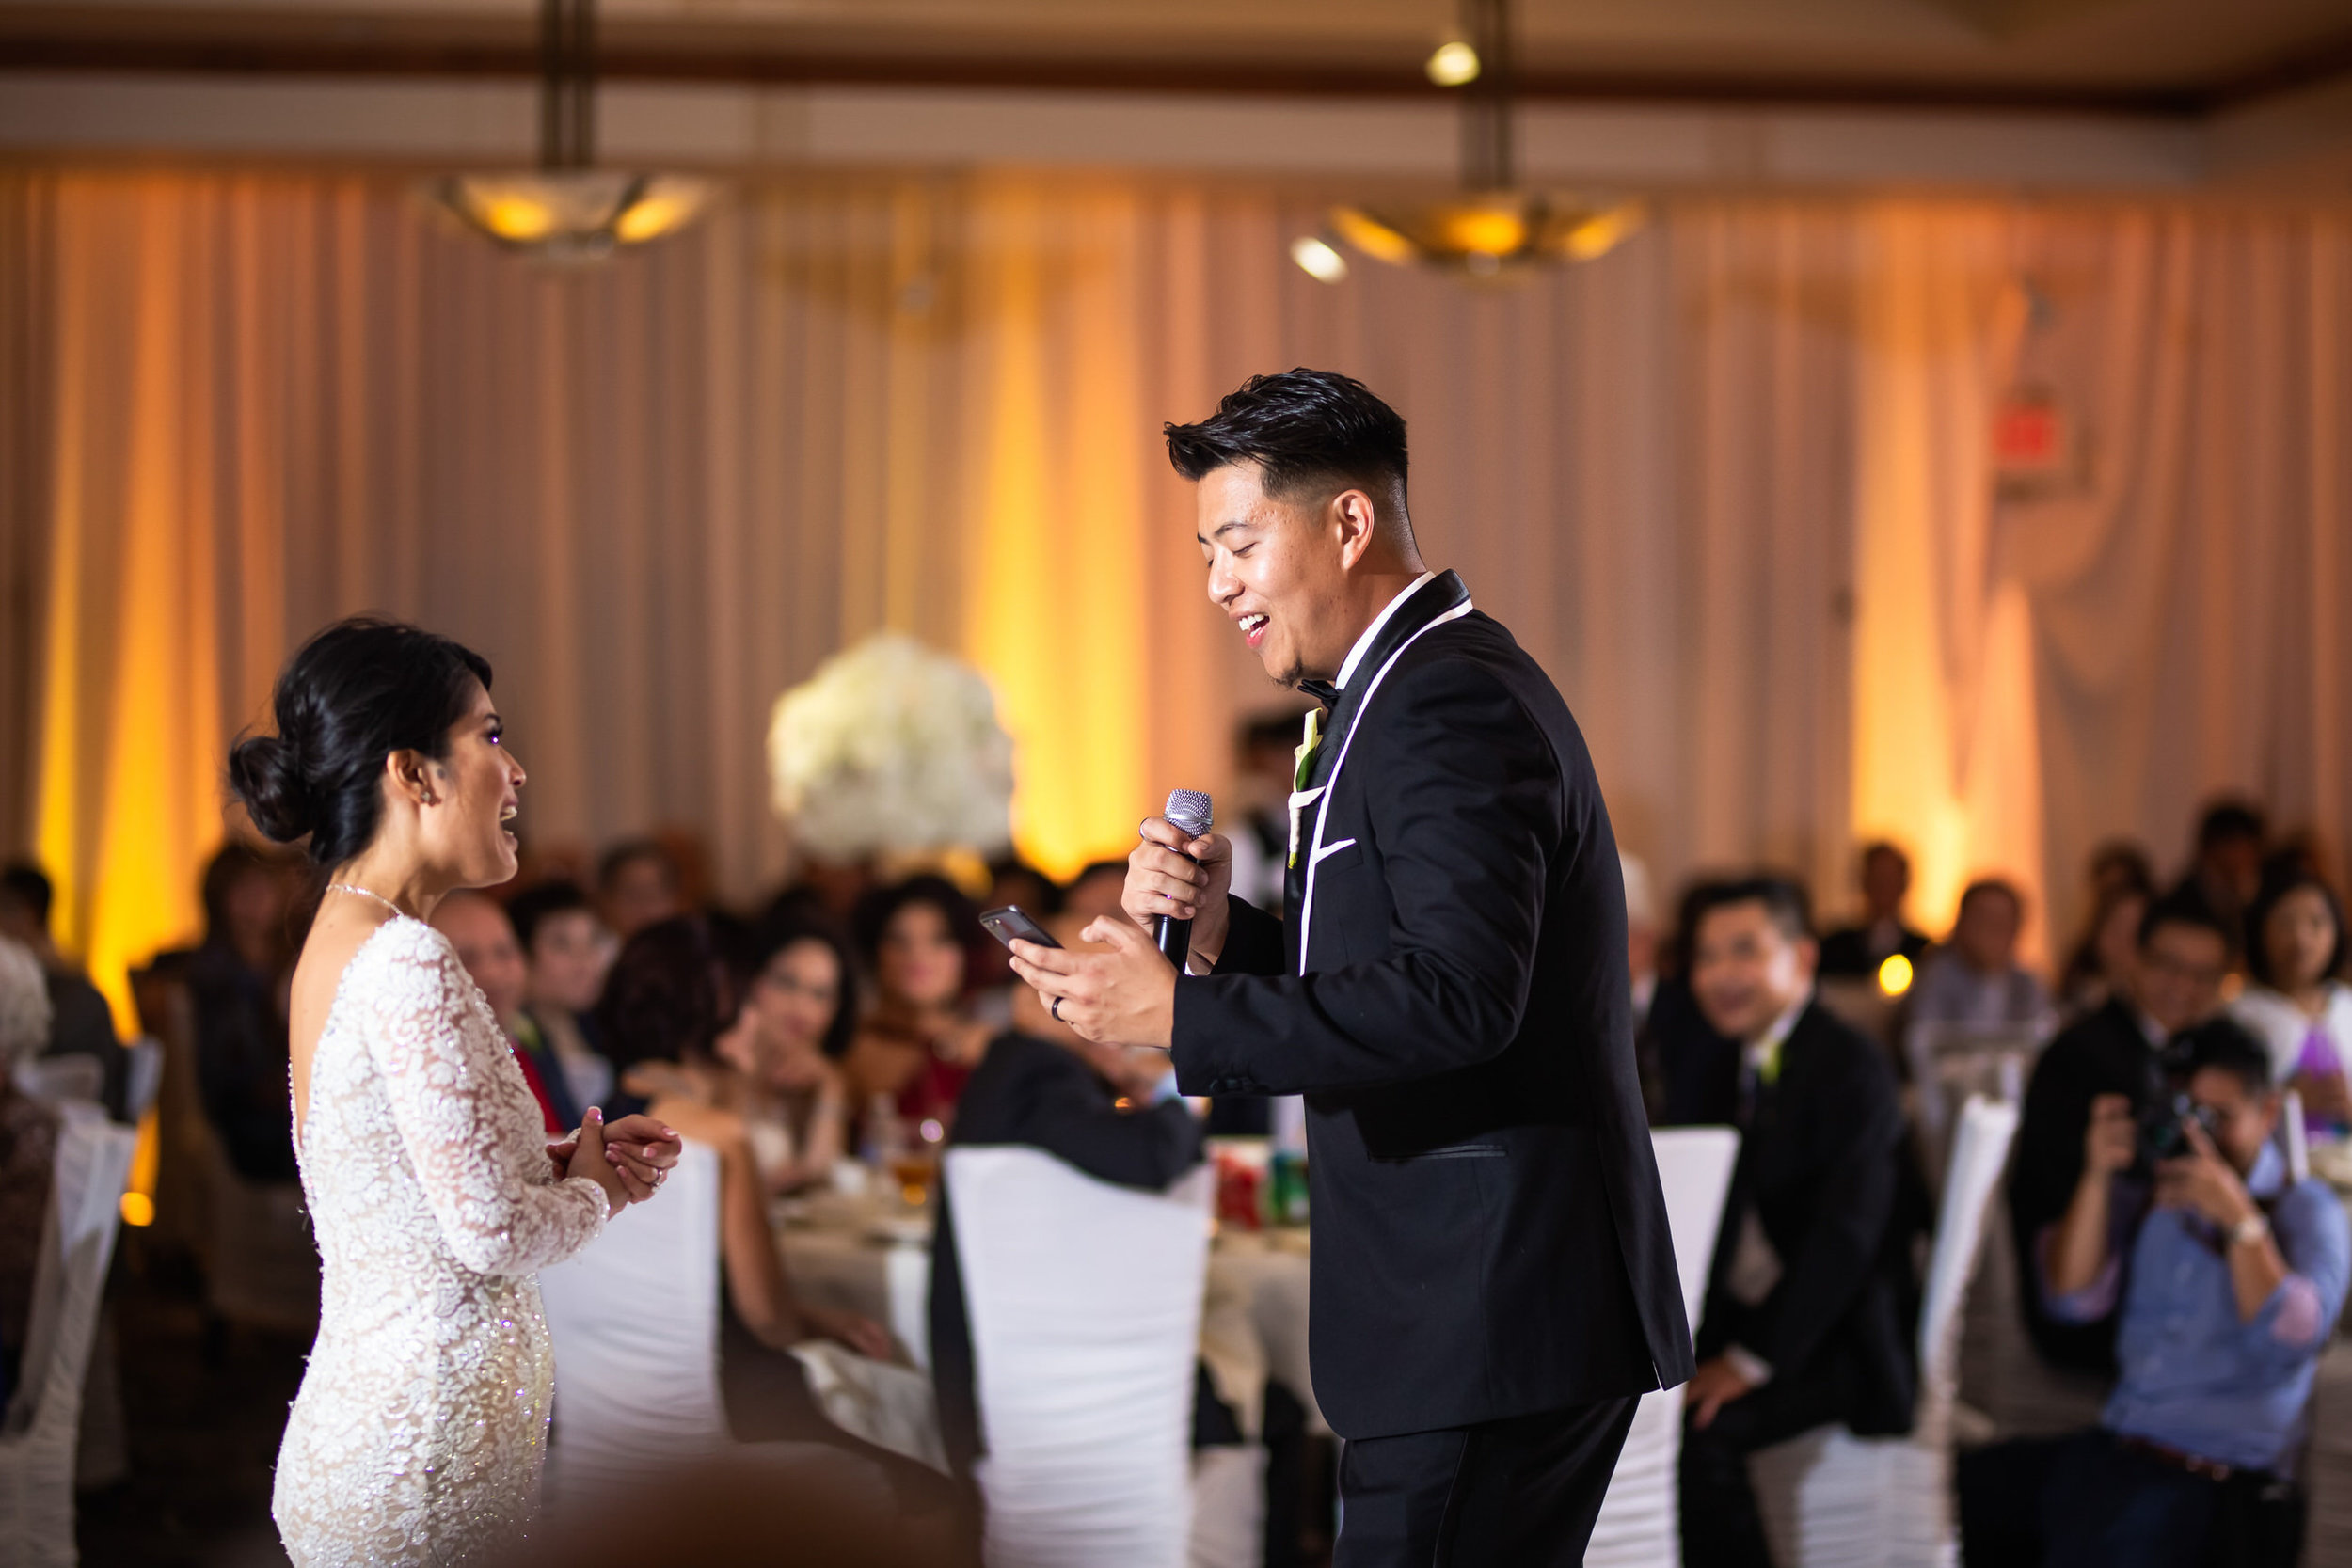 Dream_Wedding_Thanh_Thanh-4131.jpg